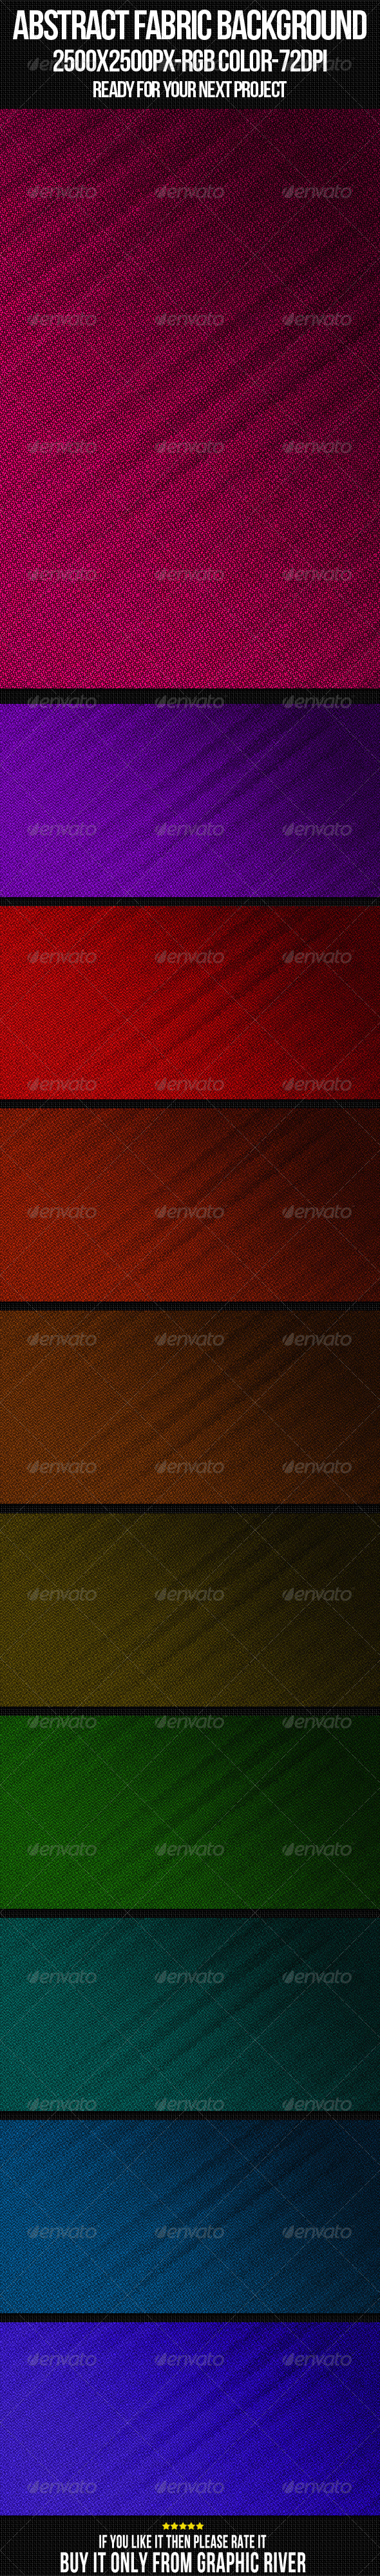 GraphicRiver Abstract Fabric Background Set 12 4450410